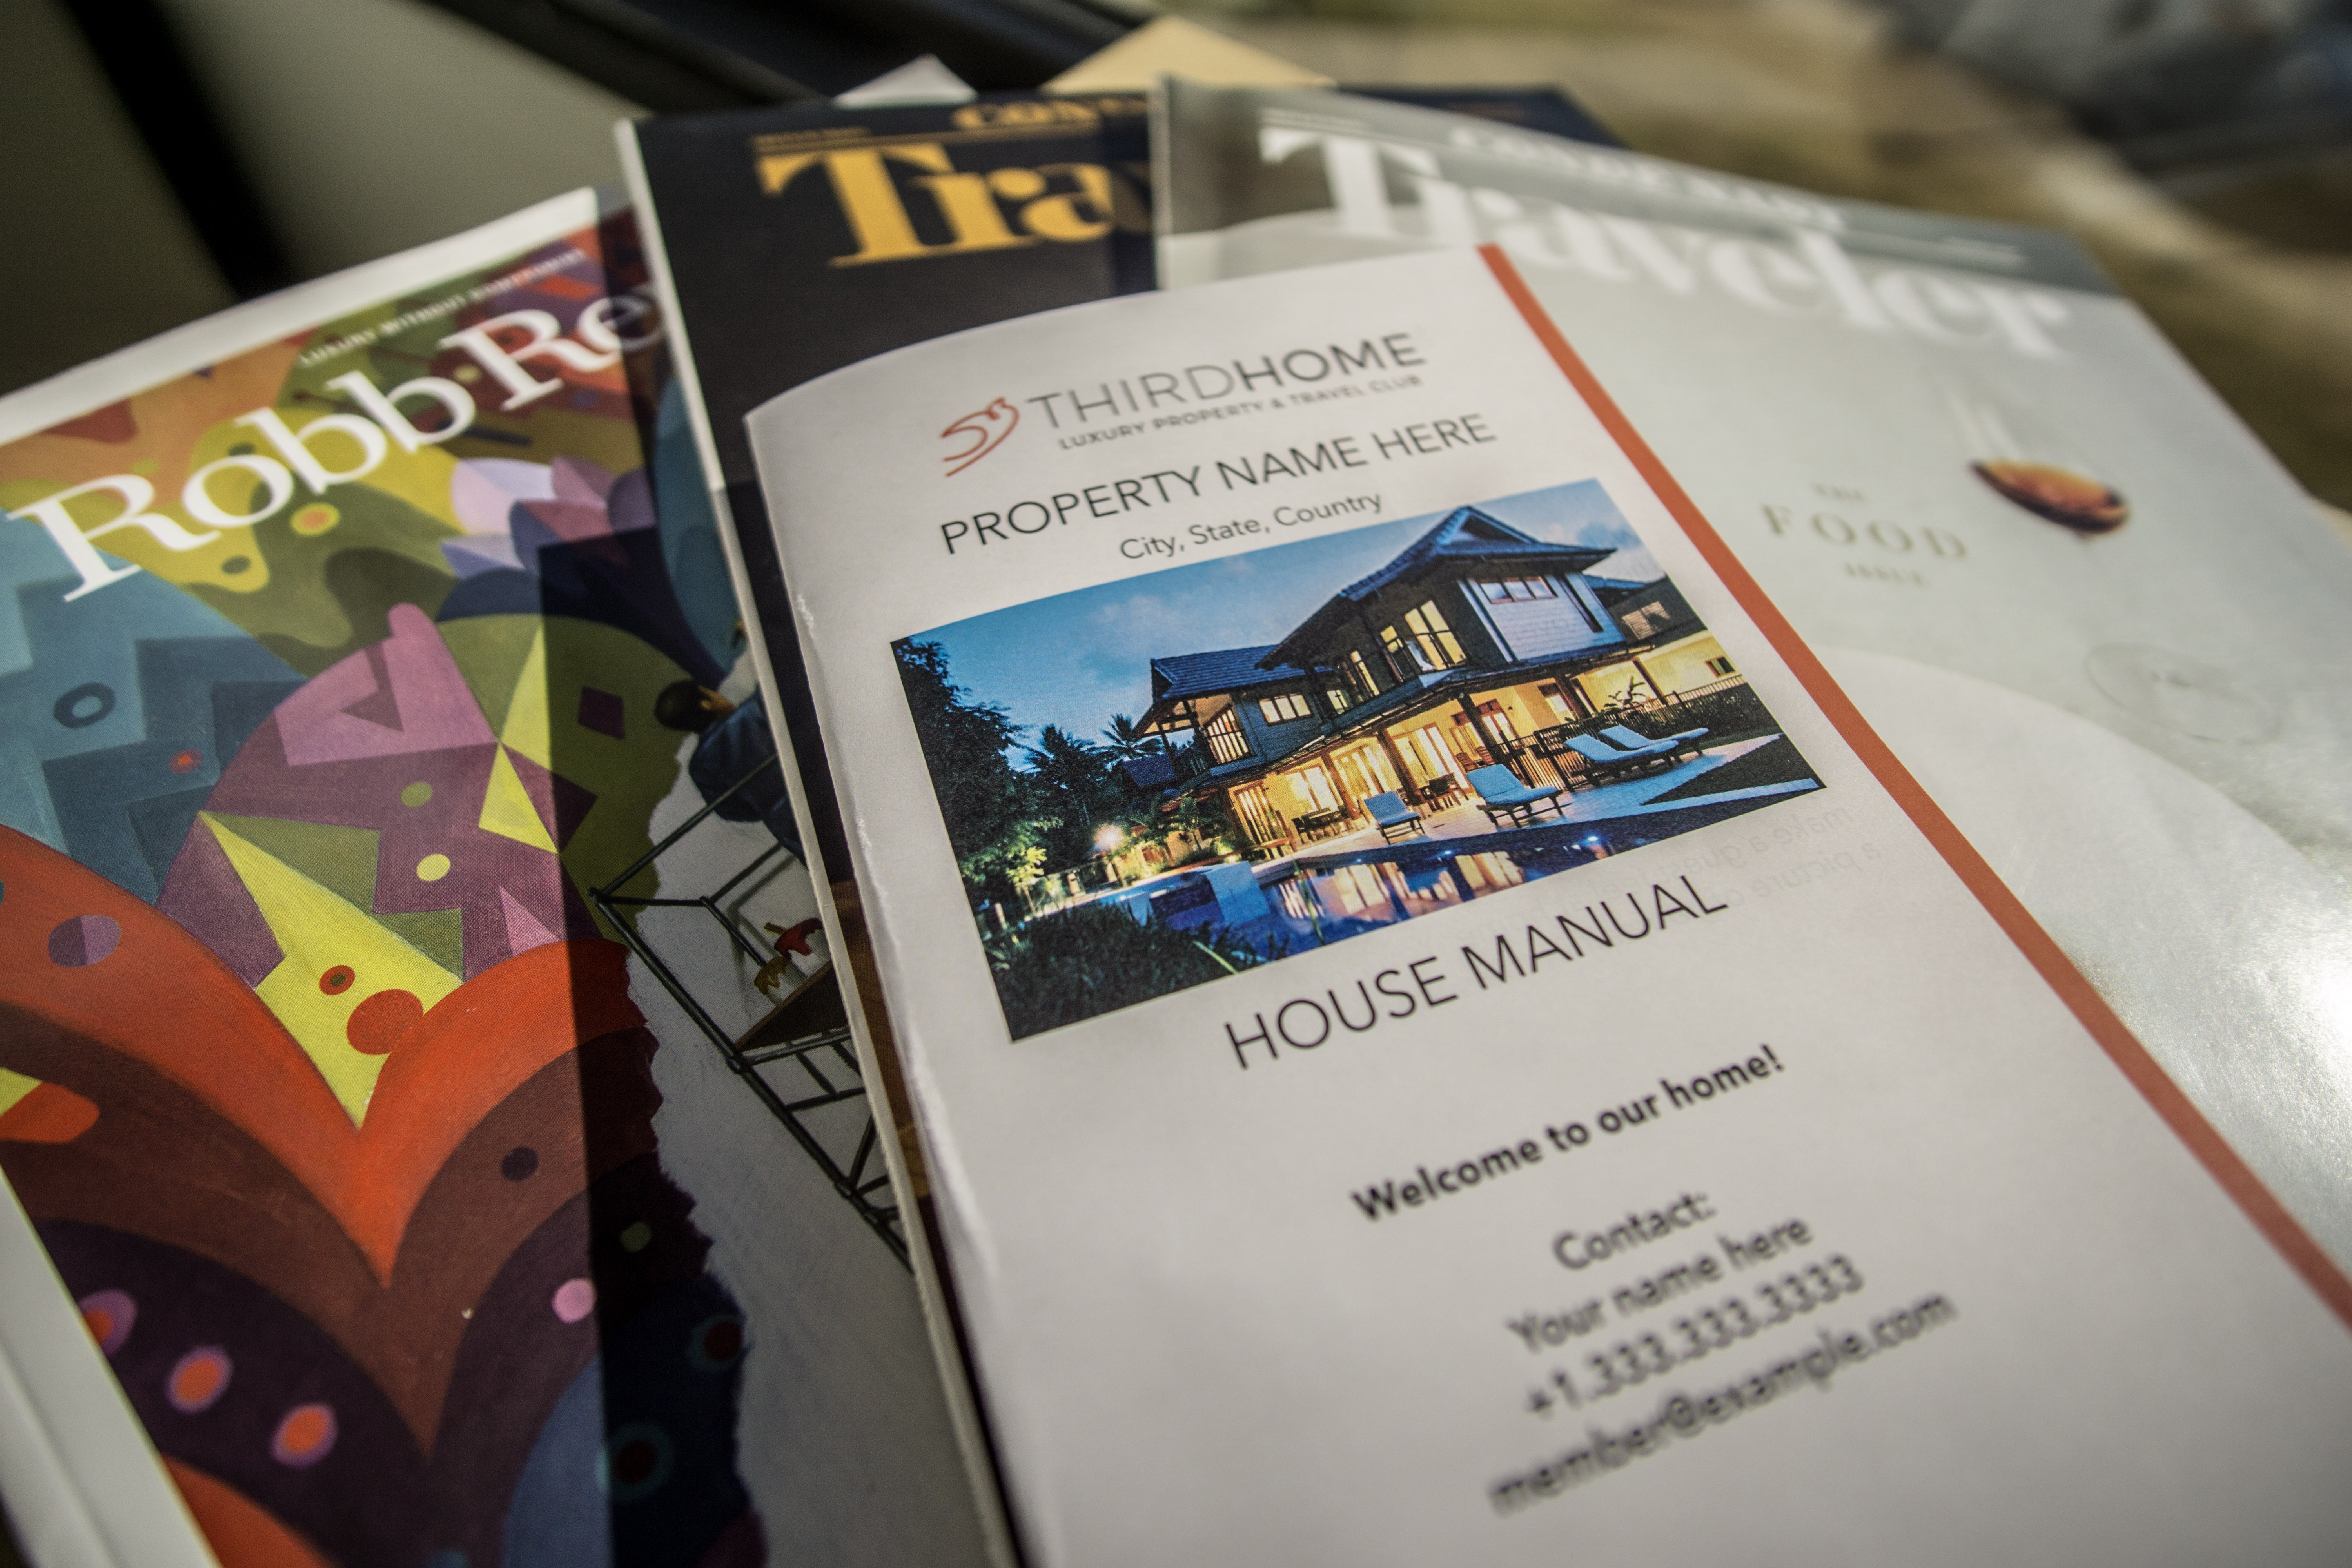 How to Create a House Manual for Guests - THIRDHOME